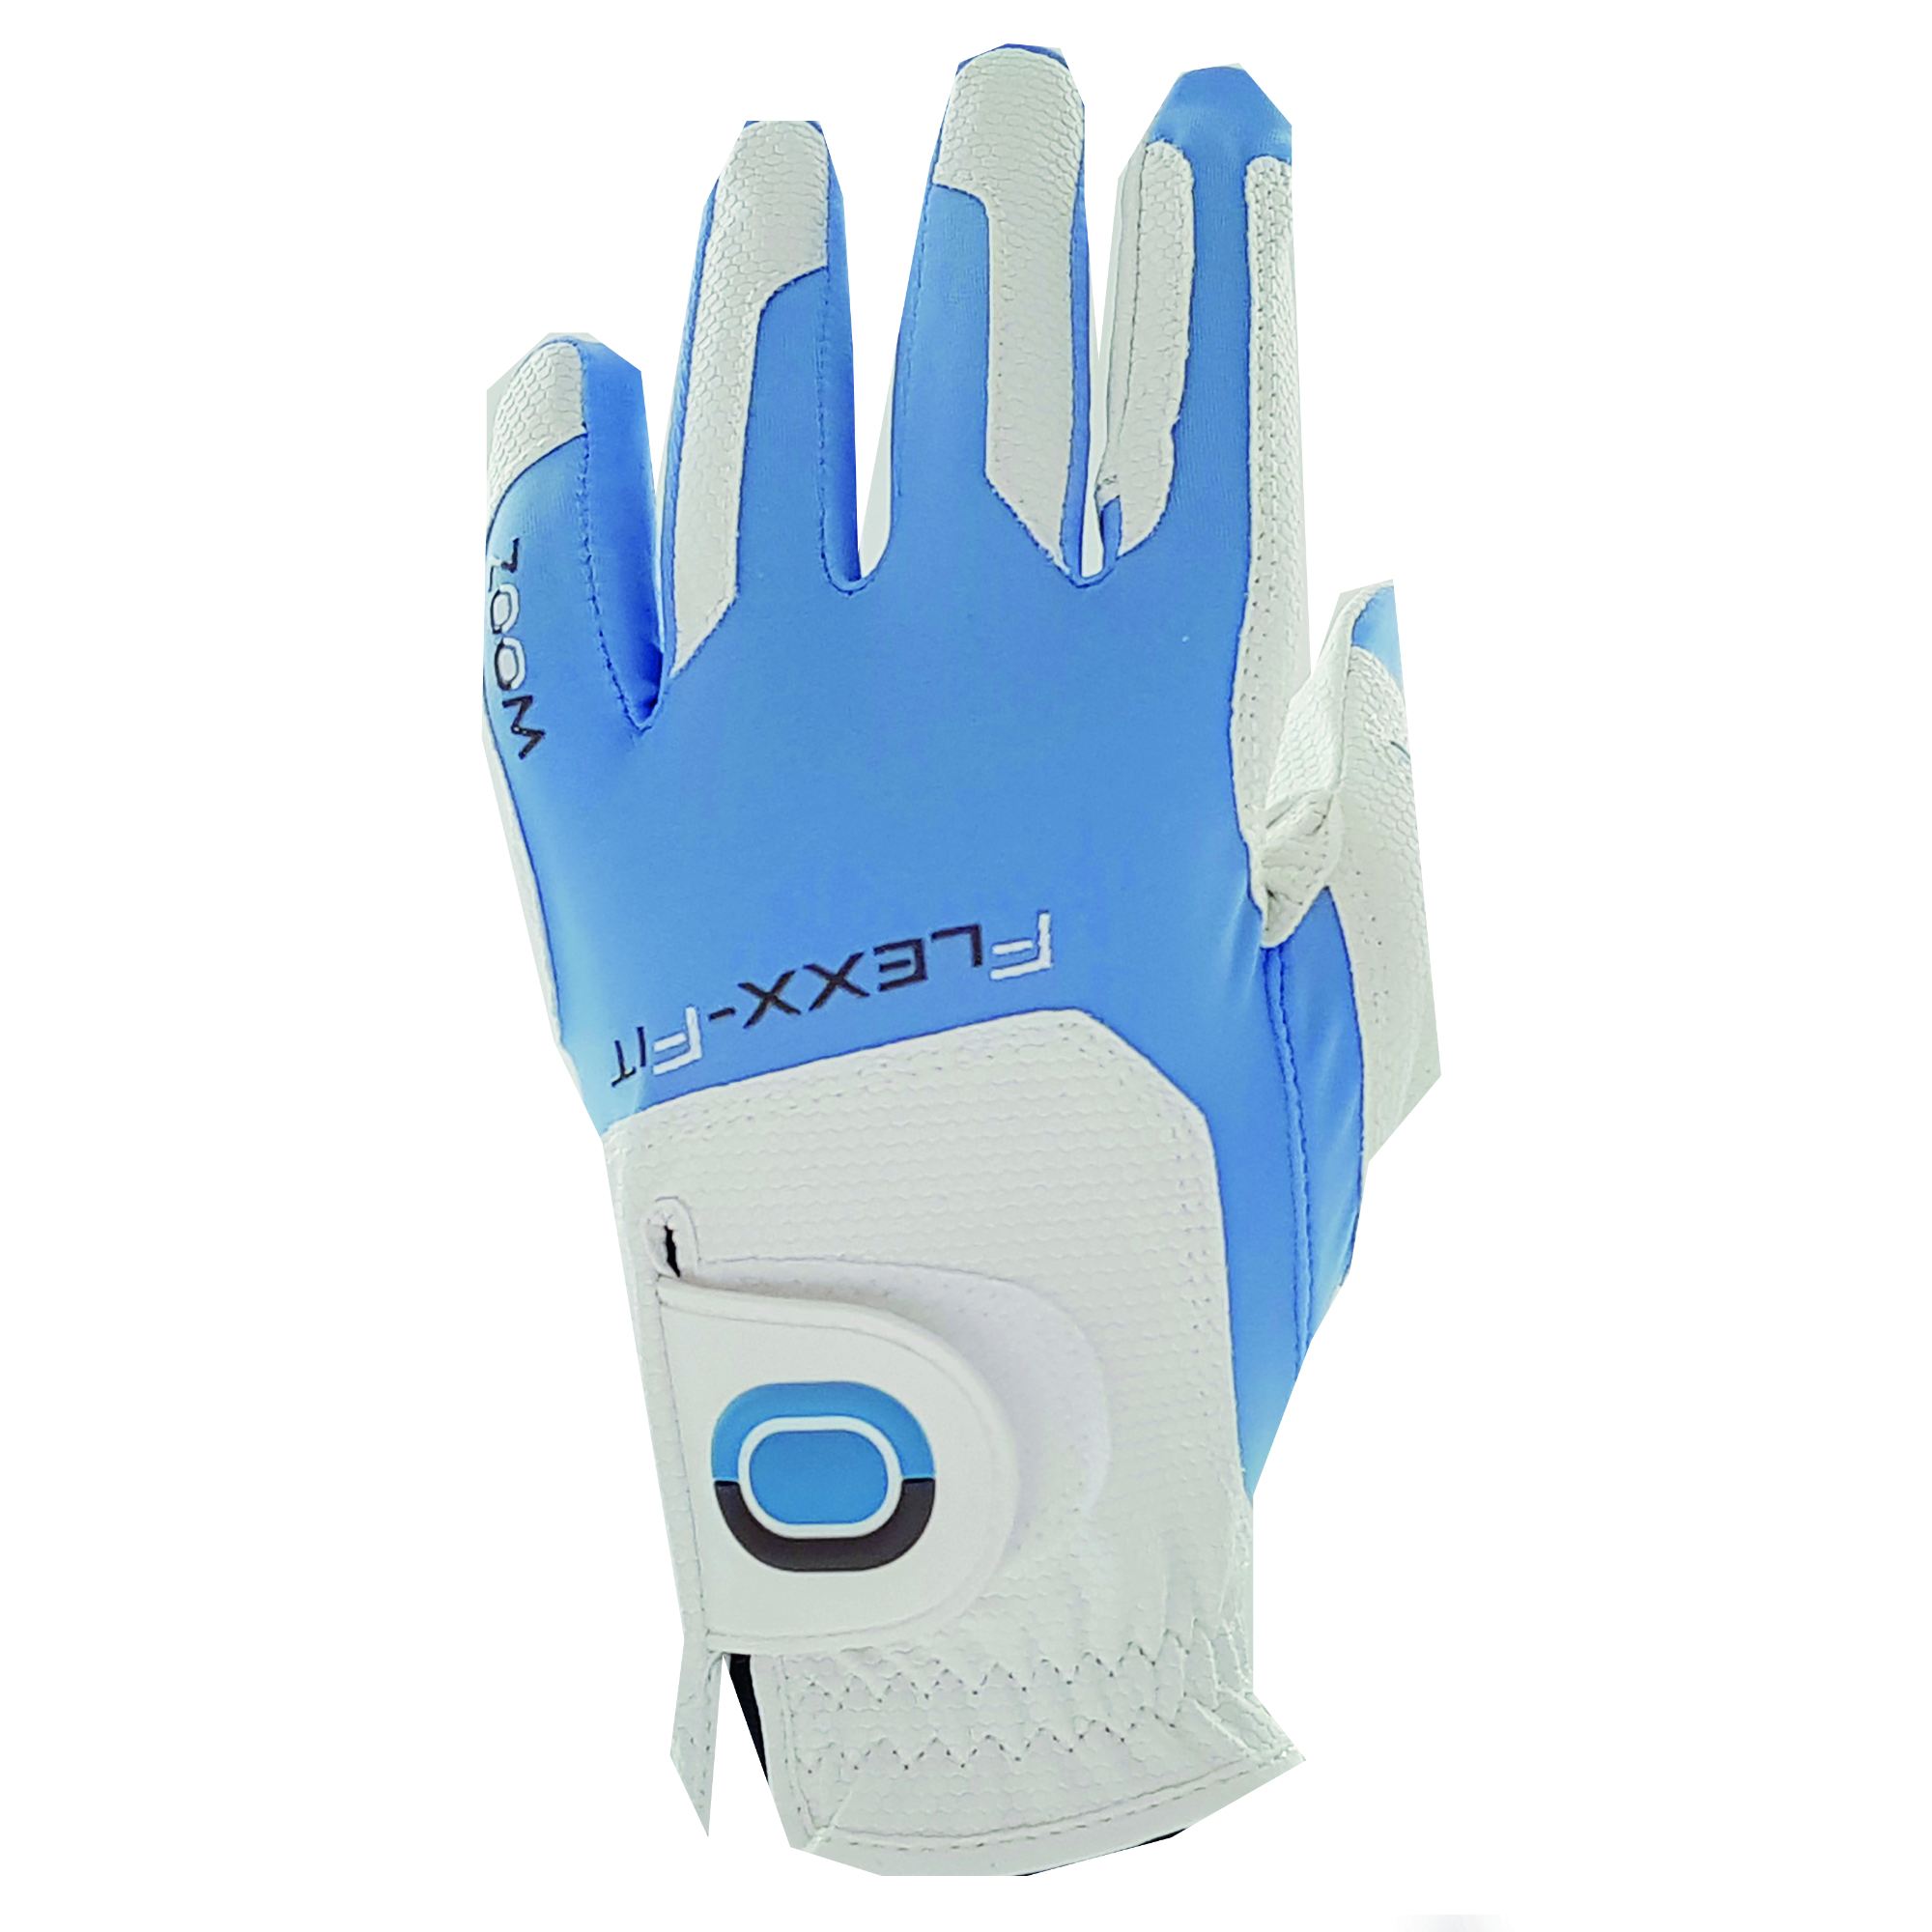 Image of Zoom Weather Ladies Golf Glove - White/Blue